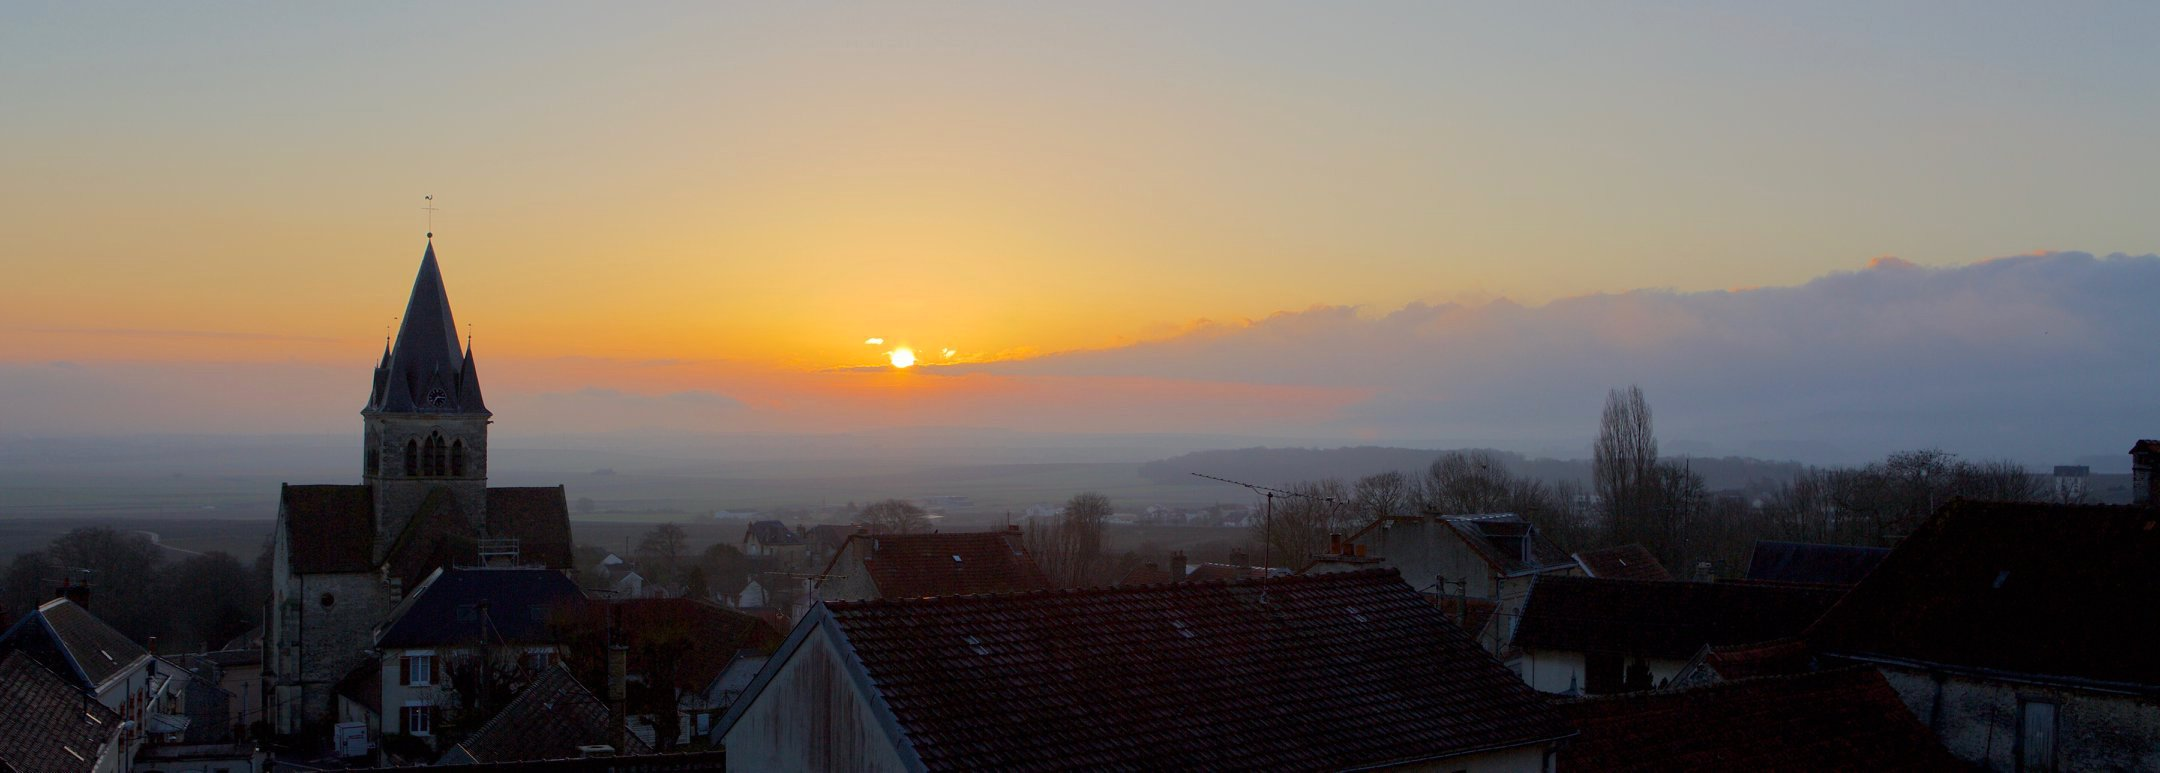 Sunrise in Champagne